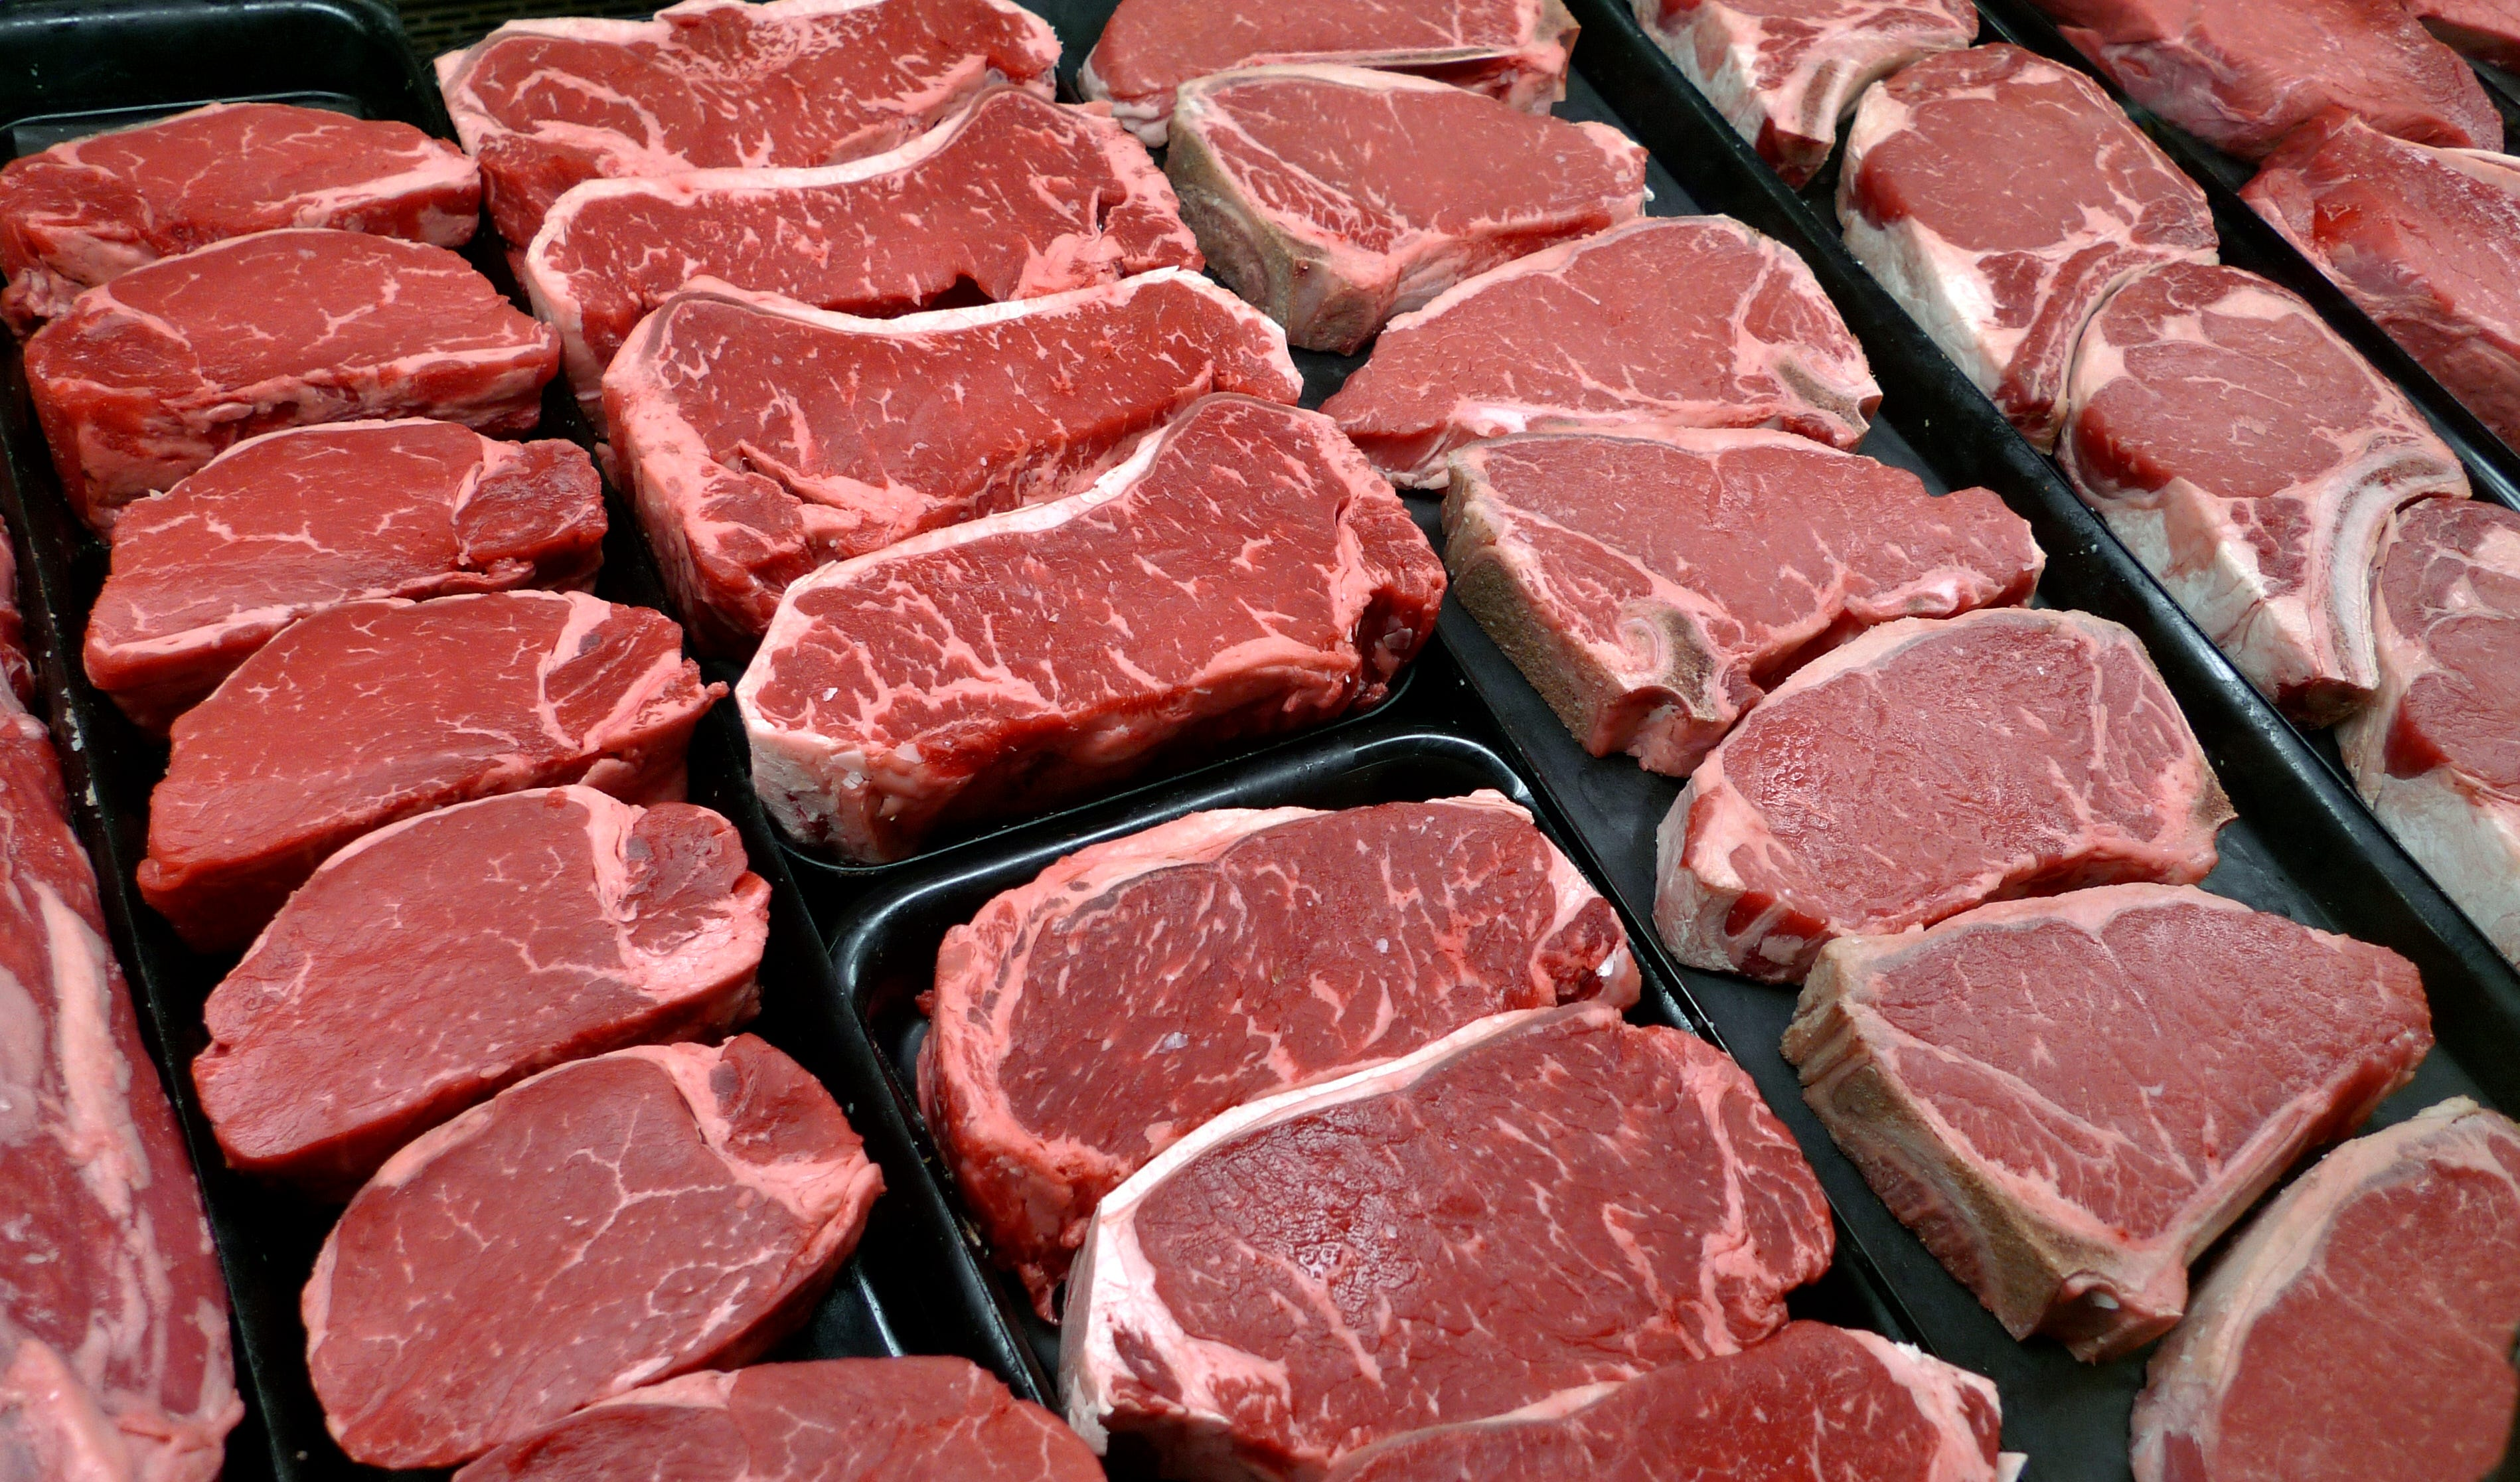 Red Meat Red Flags Discredited Fake Meat May Be Worse For Your Health